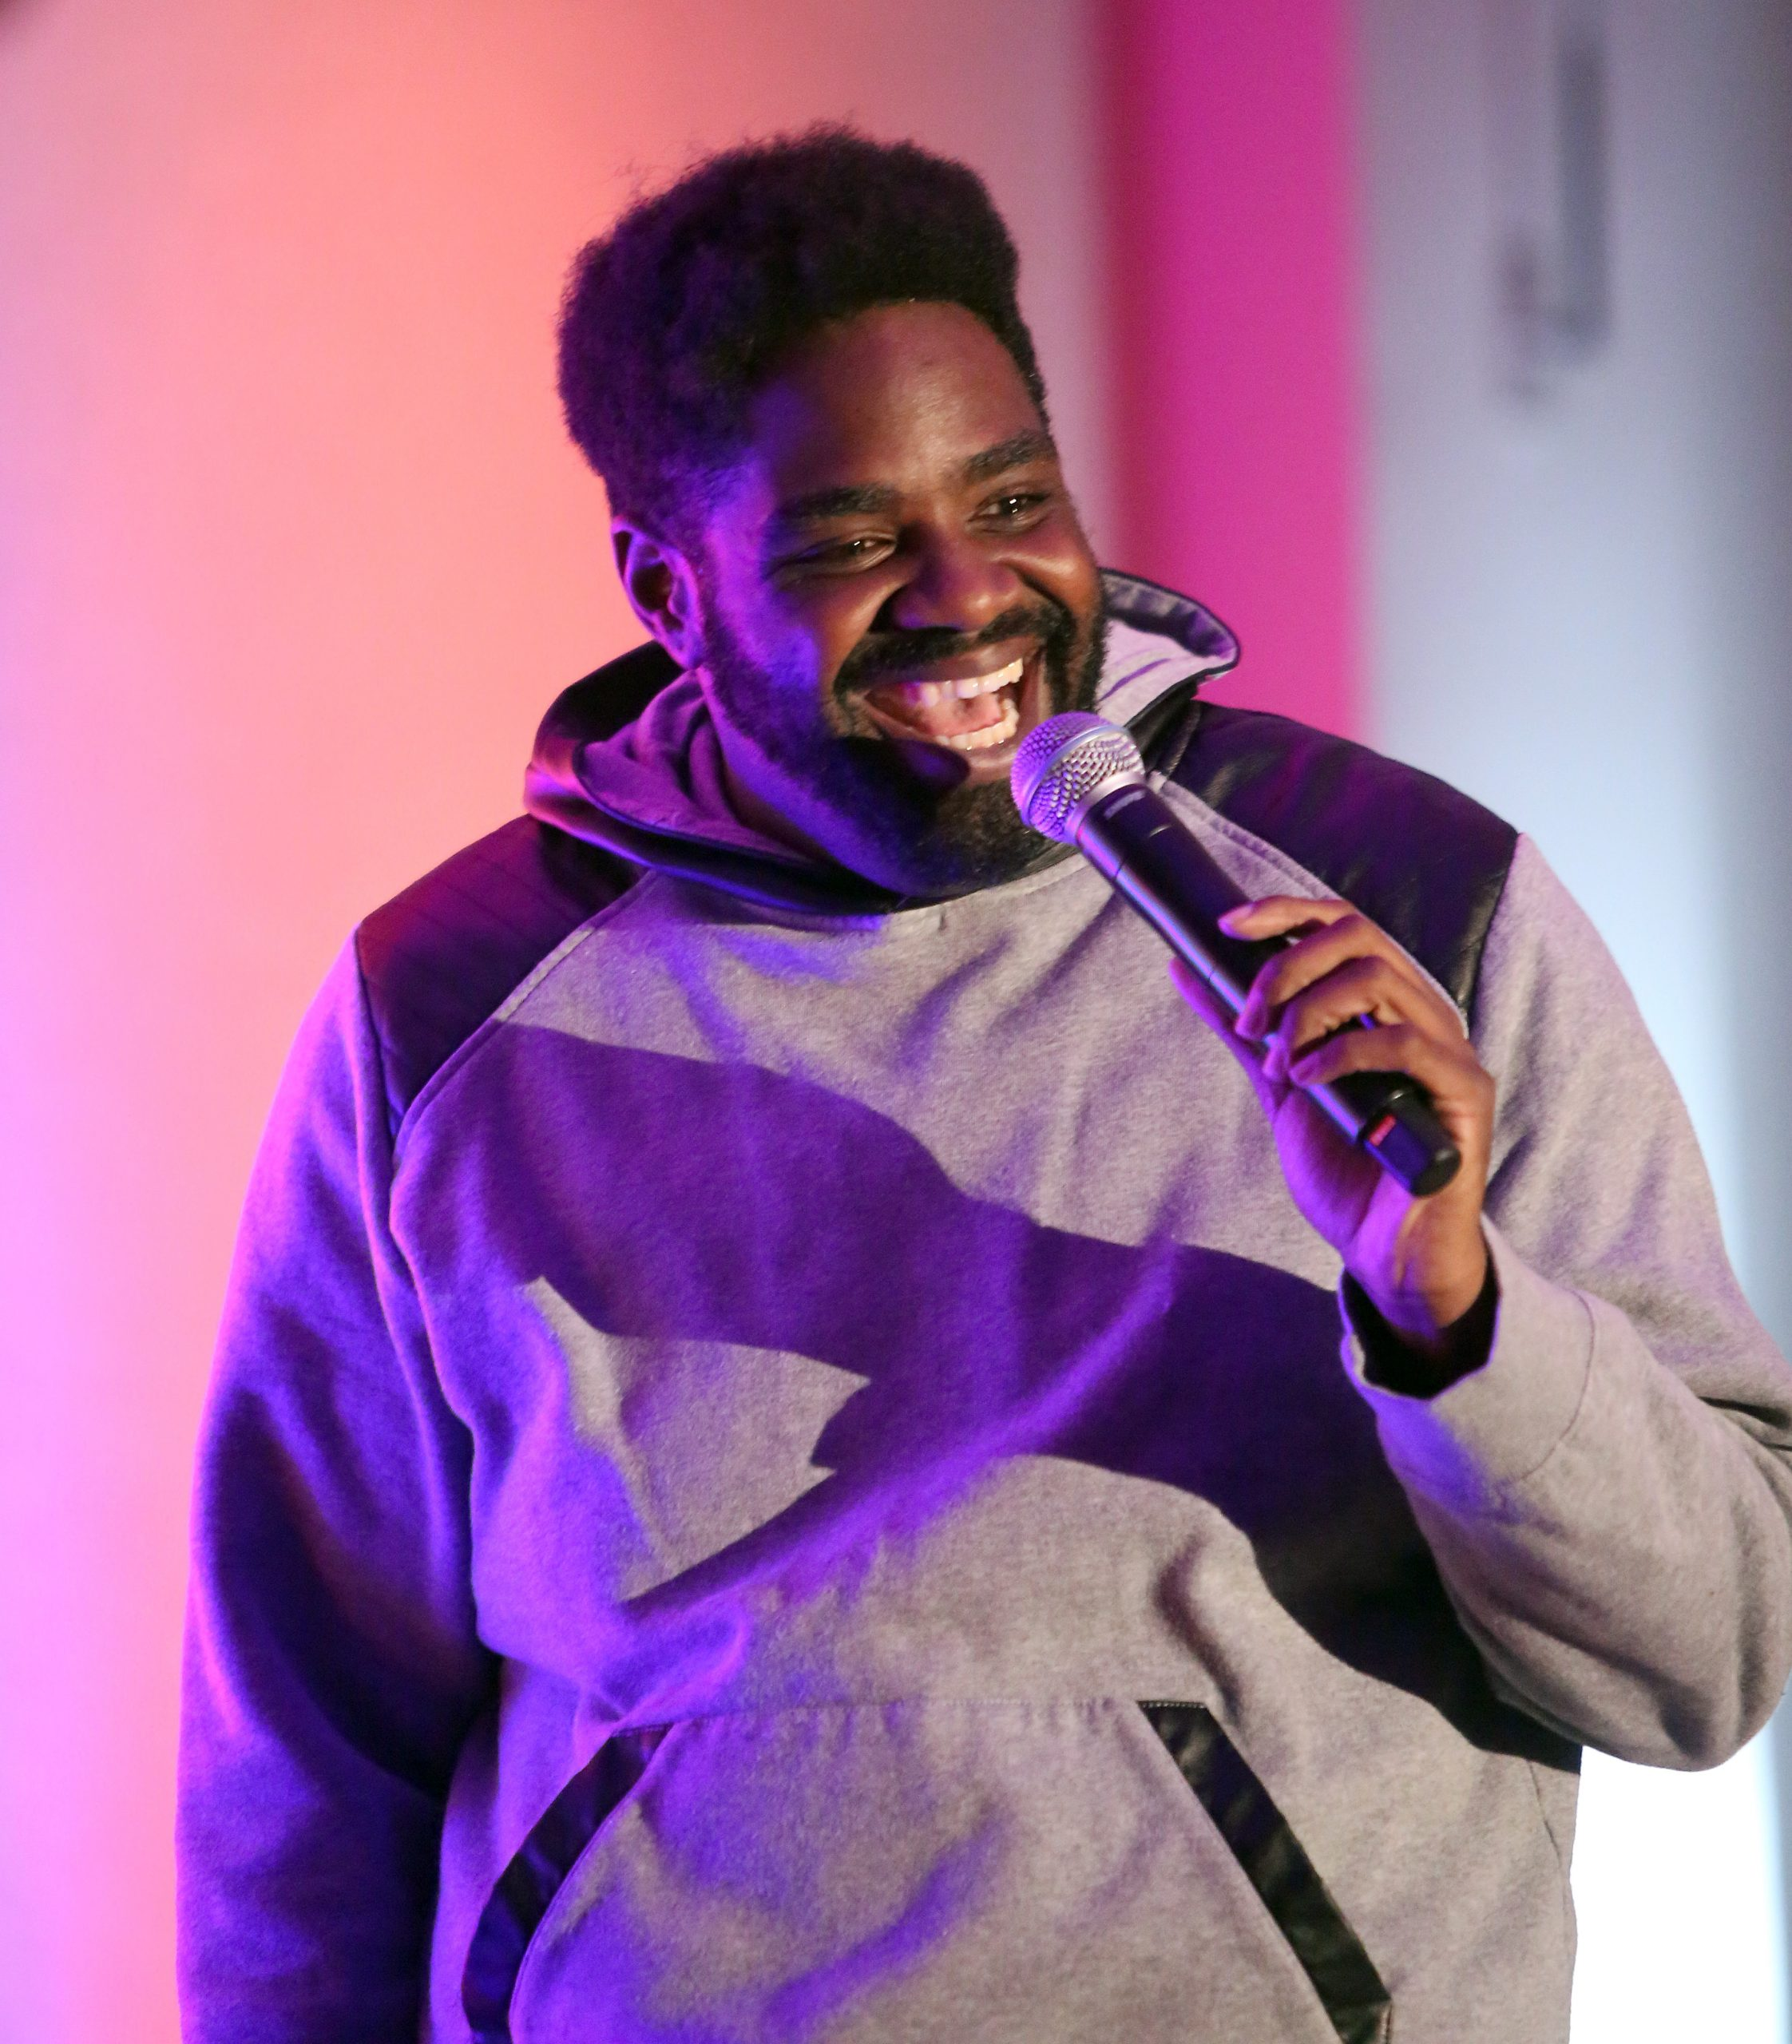 Stand-up Ron Funches, one of the friendliest comics on tour, brings his delightful humor to Thalia Hall Friday 8/11.